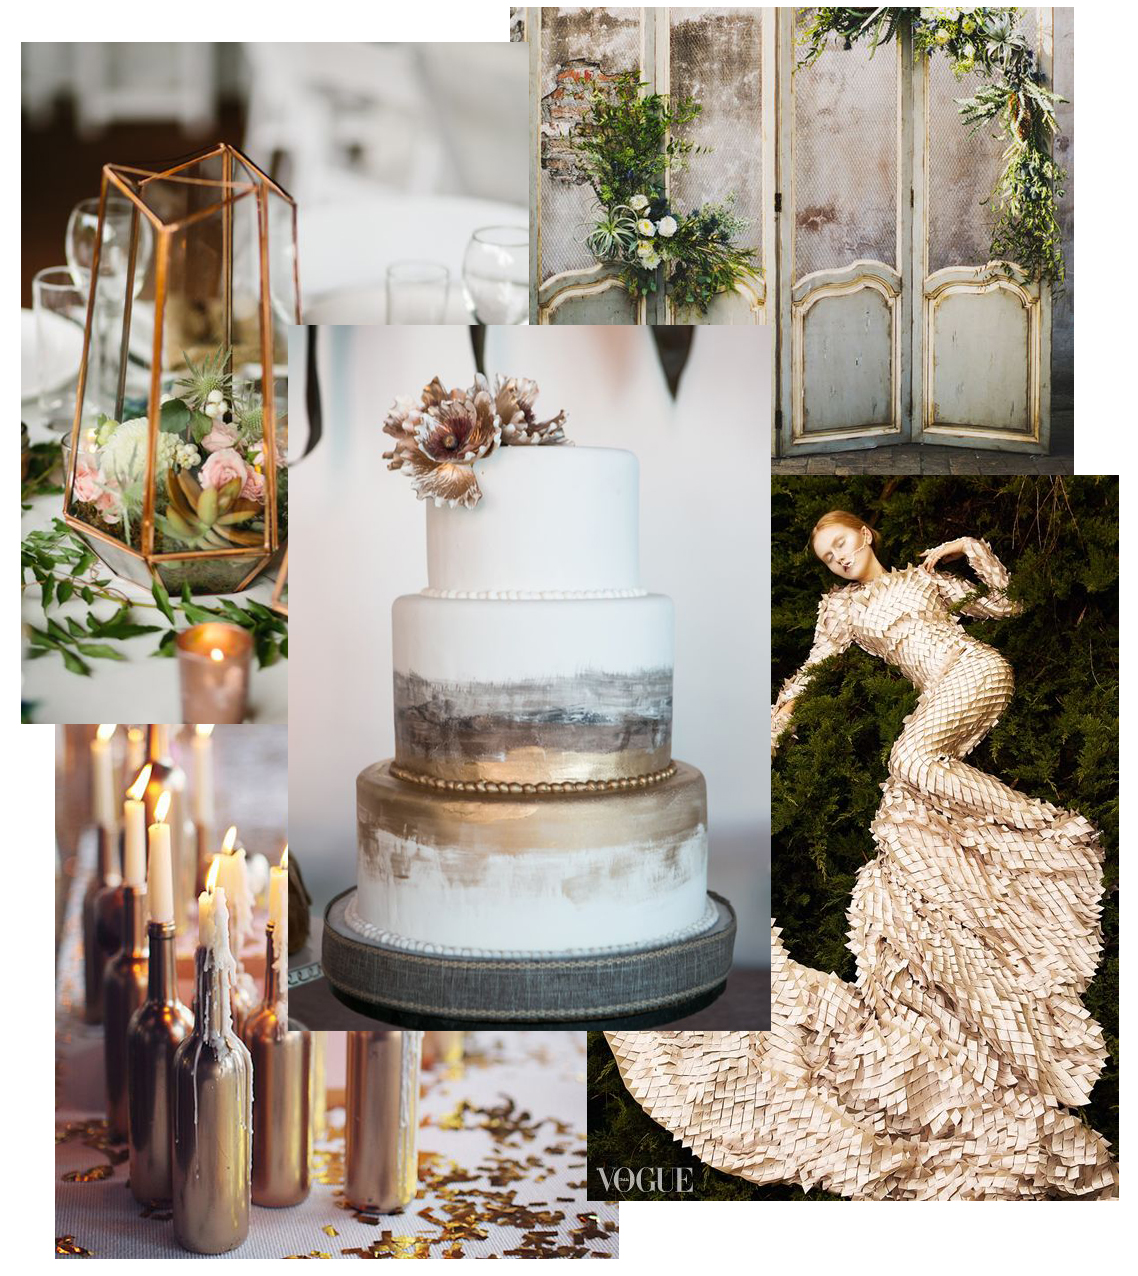 images via Real Weddings, Vogue, Fab You Bliss, Brit & Co, Gold Wedding Shoes